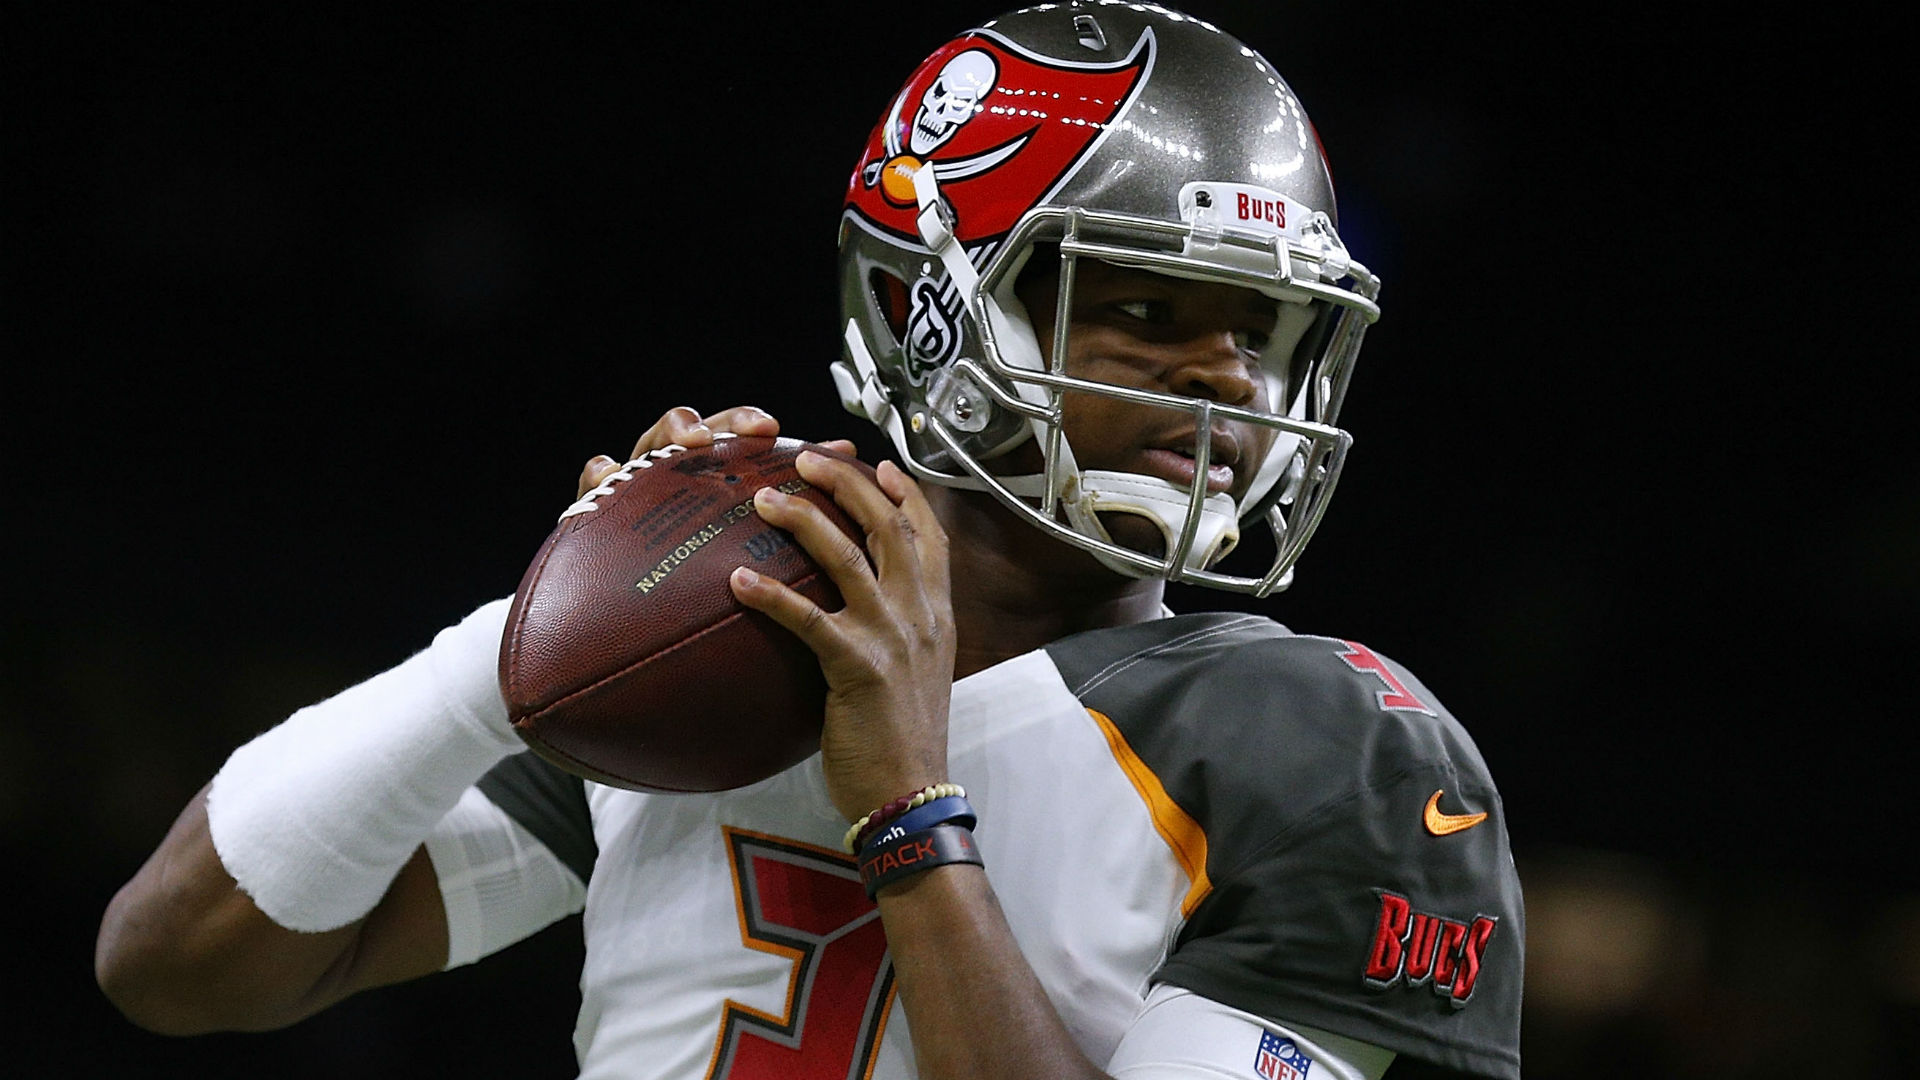 Jameis Winston to undergo MRI, X-rays on problematic shoulder